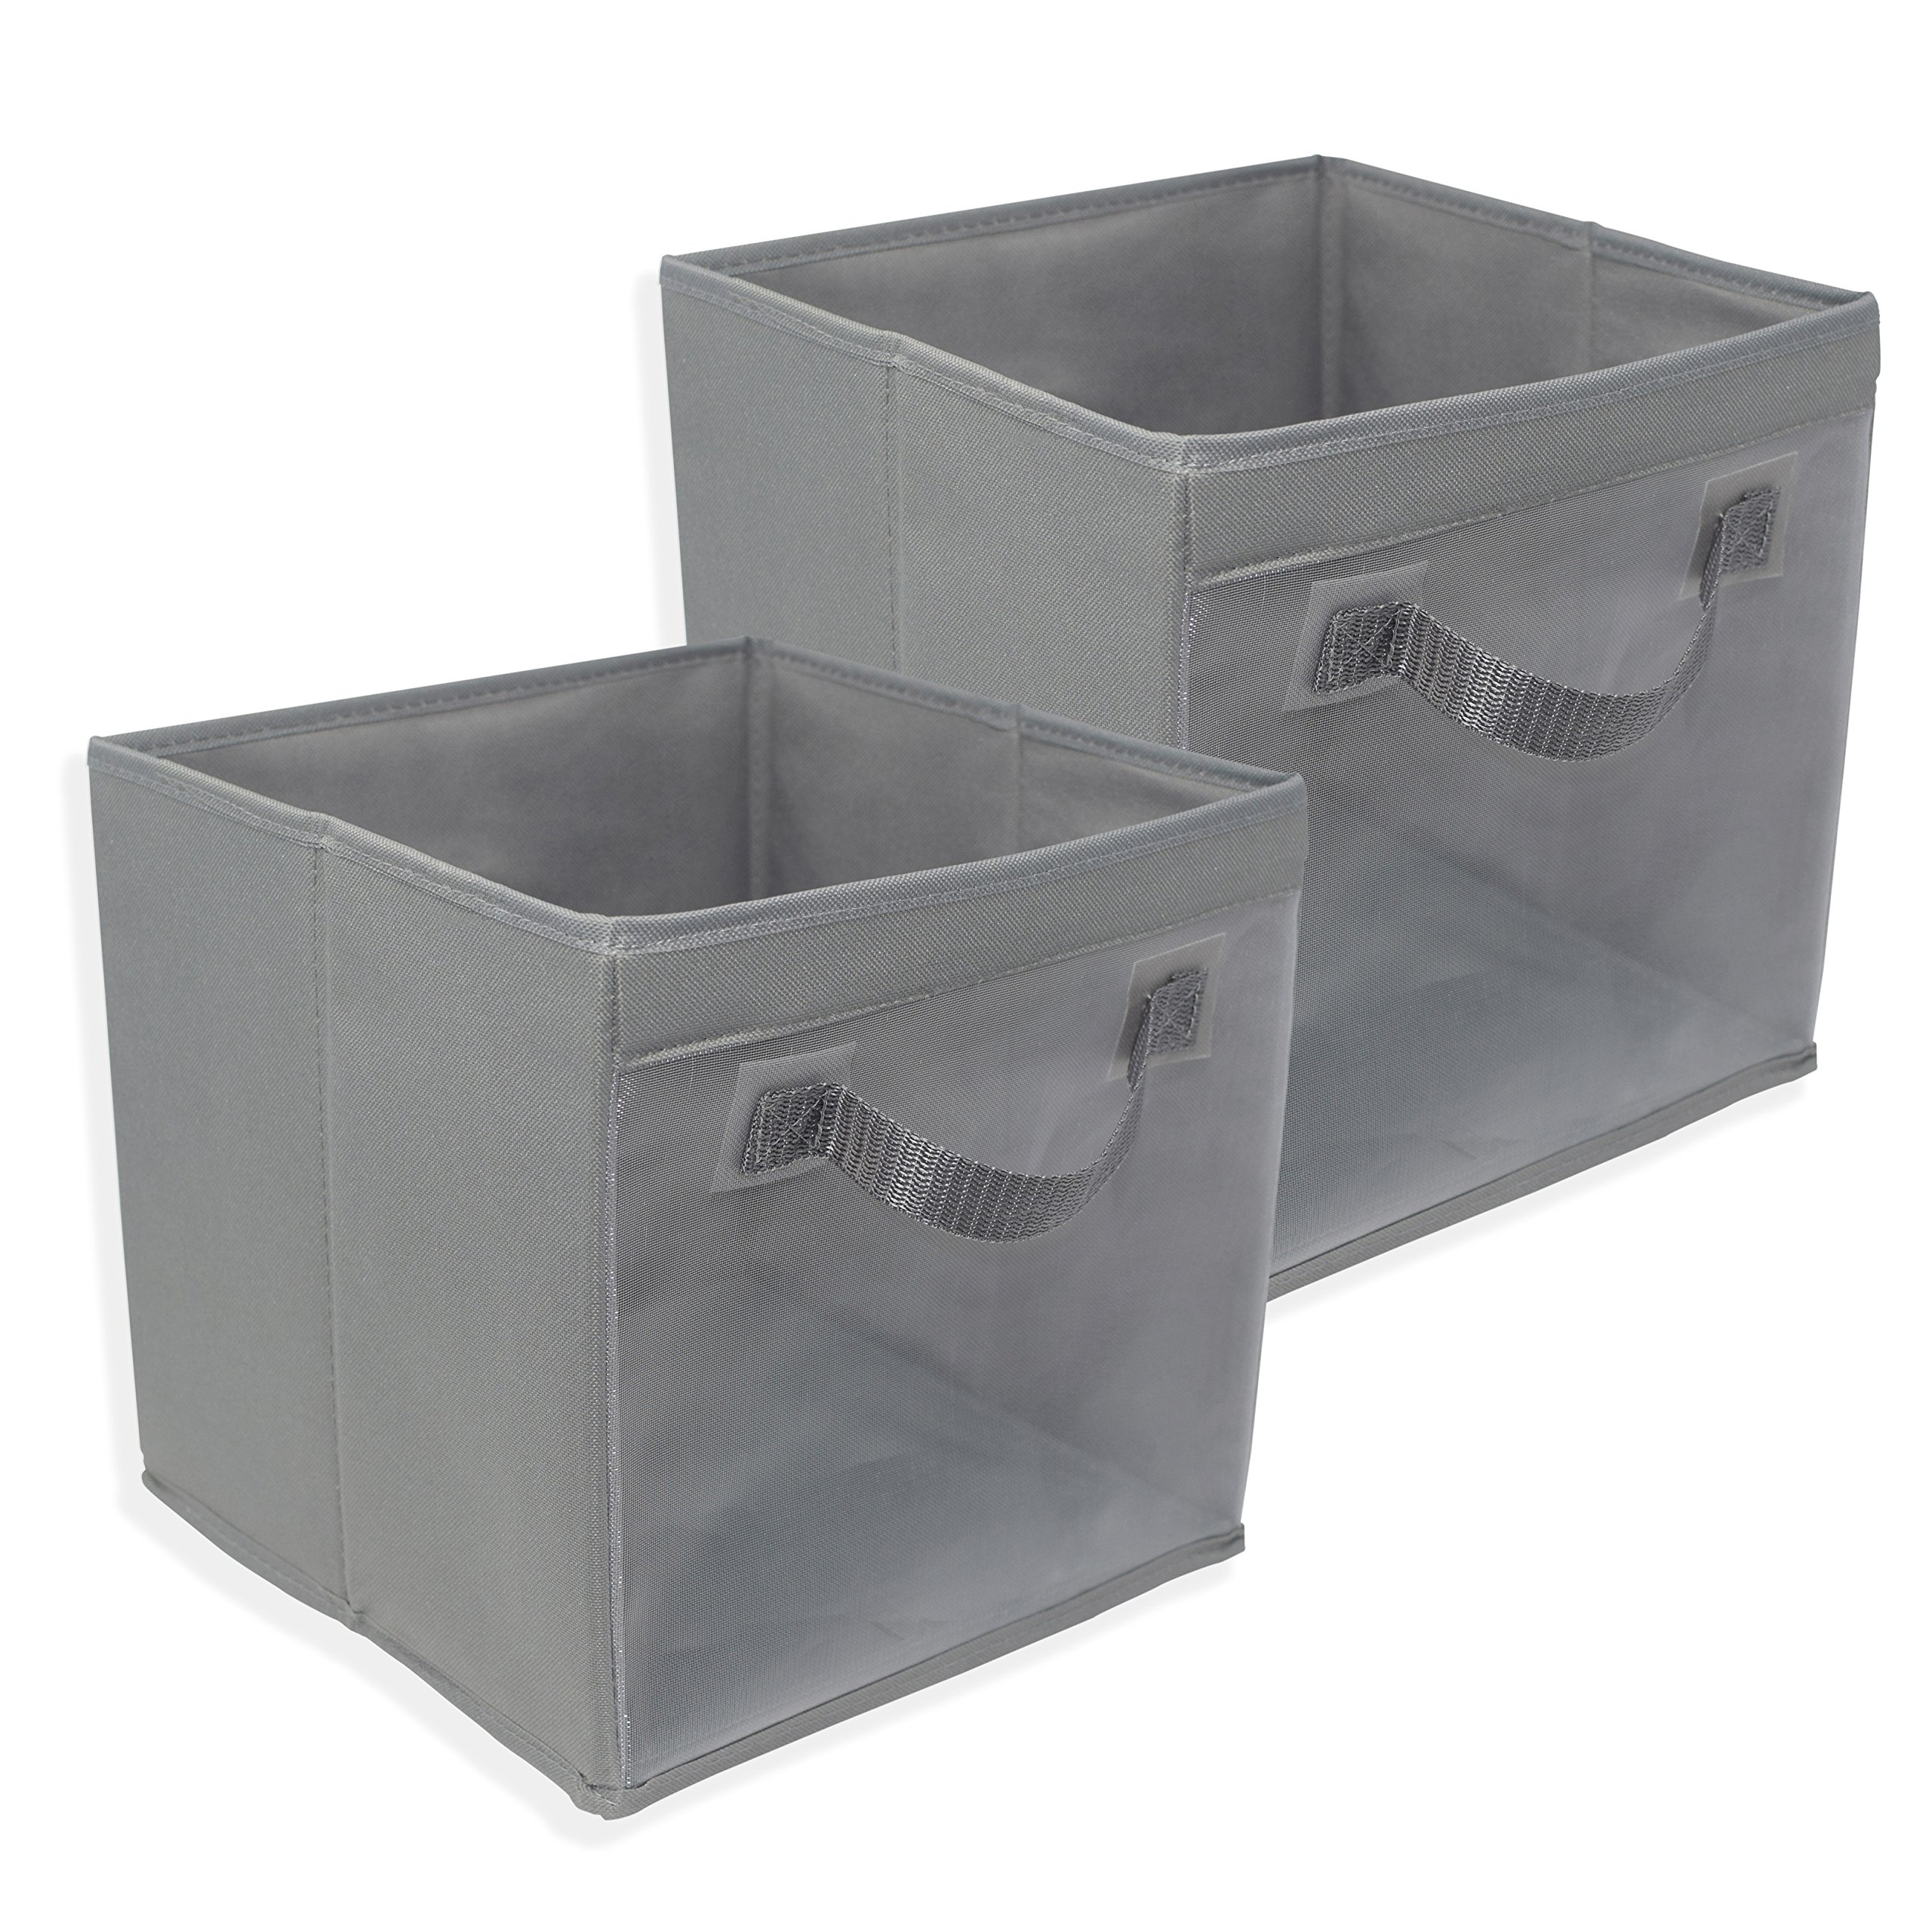 EASYVIEW Storage Cube with Handle 100% Woven Oxford Nylon Bin with Mesh See Thru Side 10.5 x 10.5 x 10 Inches, Foldable, White, Brown and Grey (Dark Grey 2 Pack)